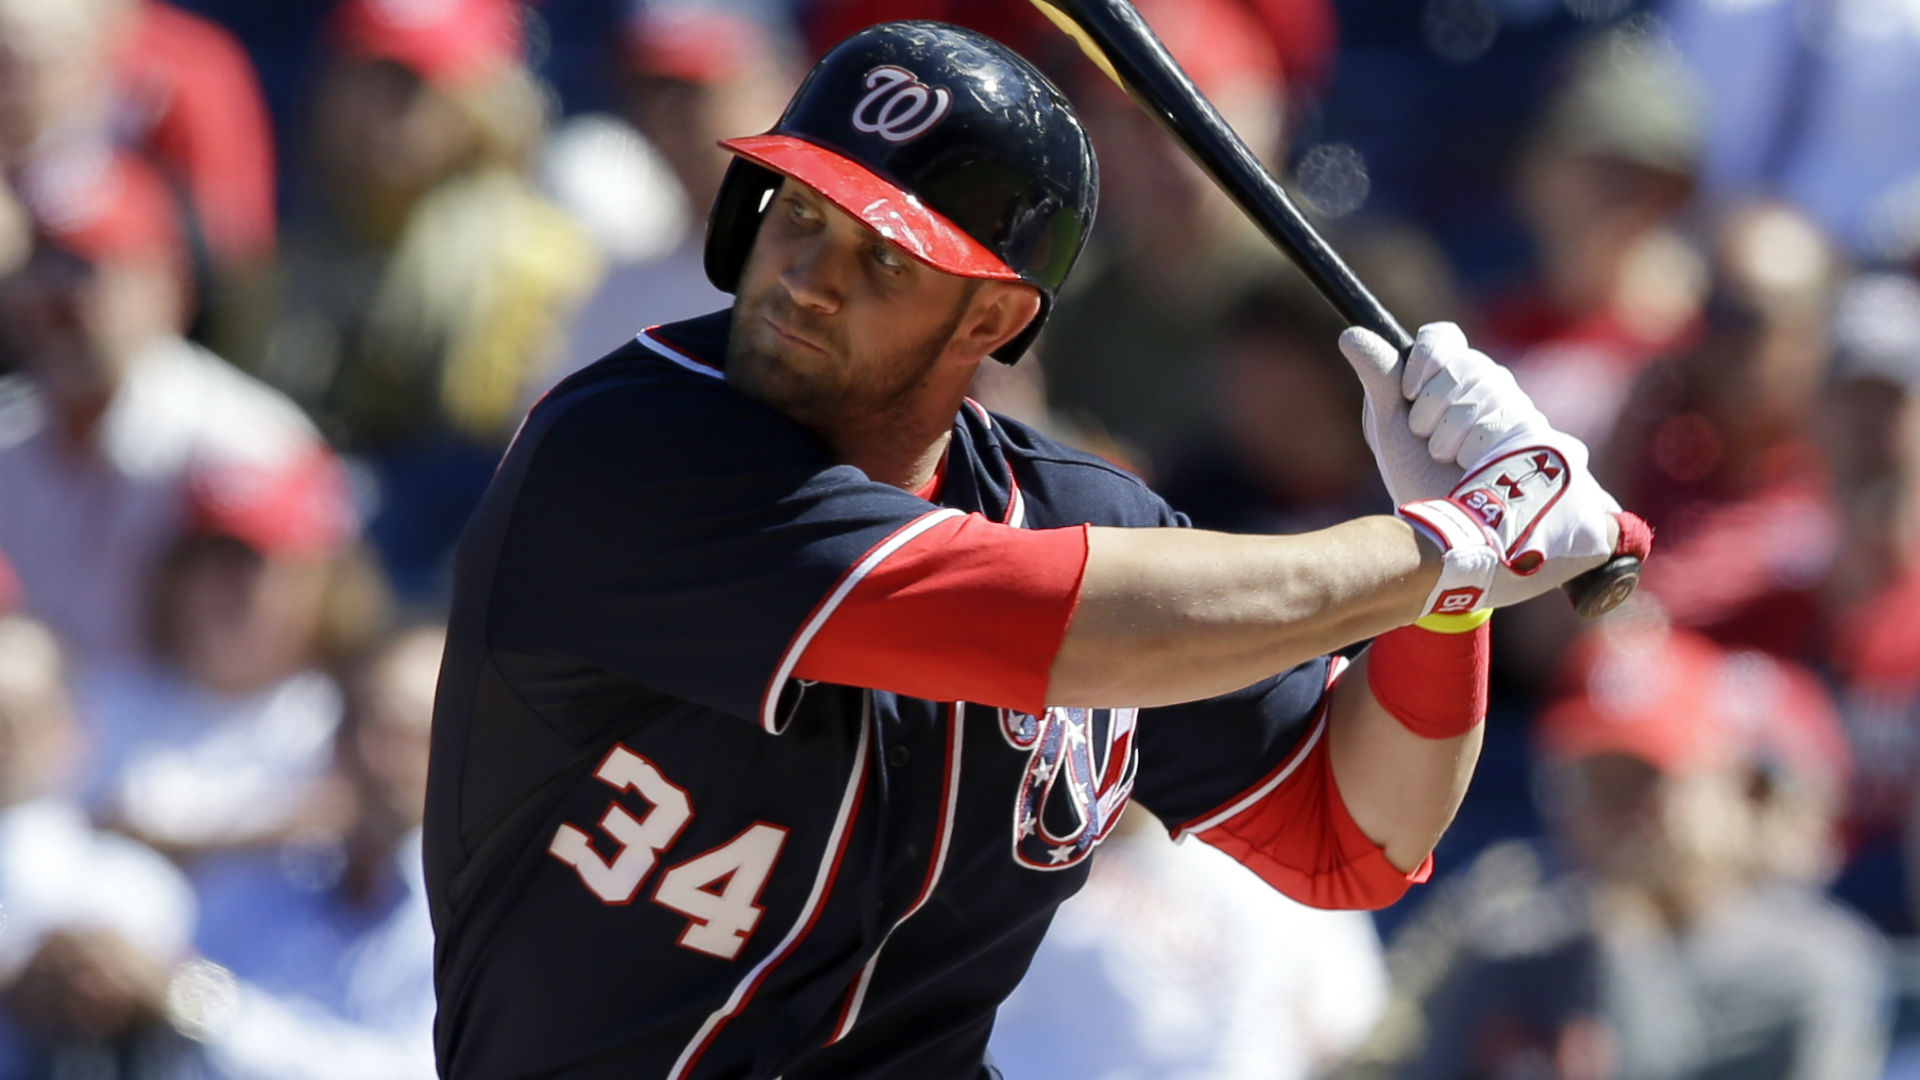 Bryce Harper's Day: Addressing Steroids, Clown Questions